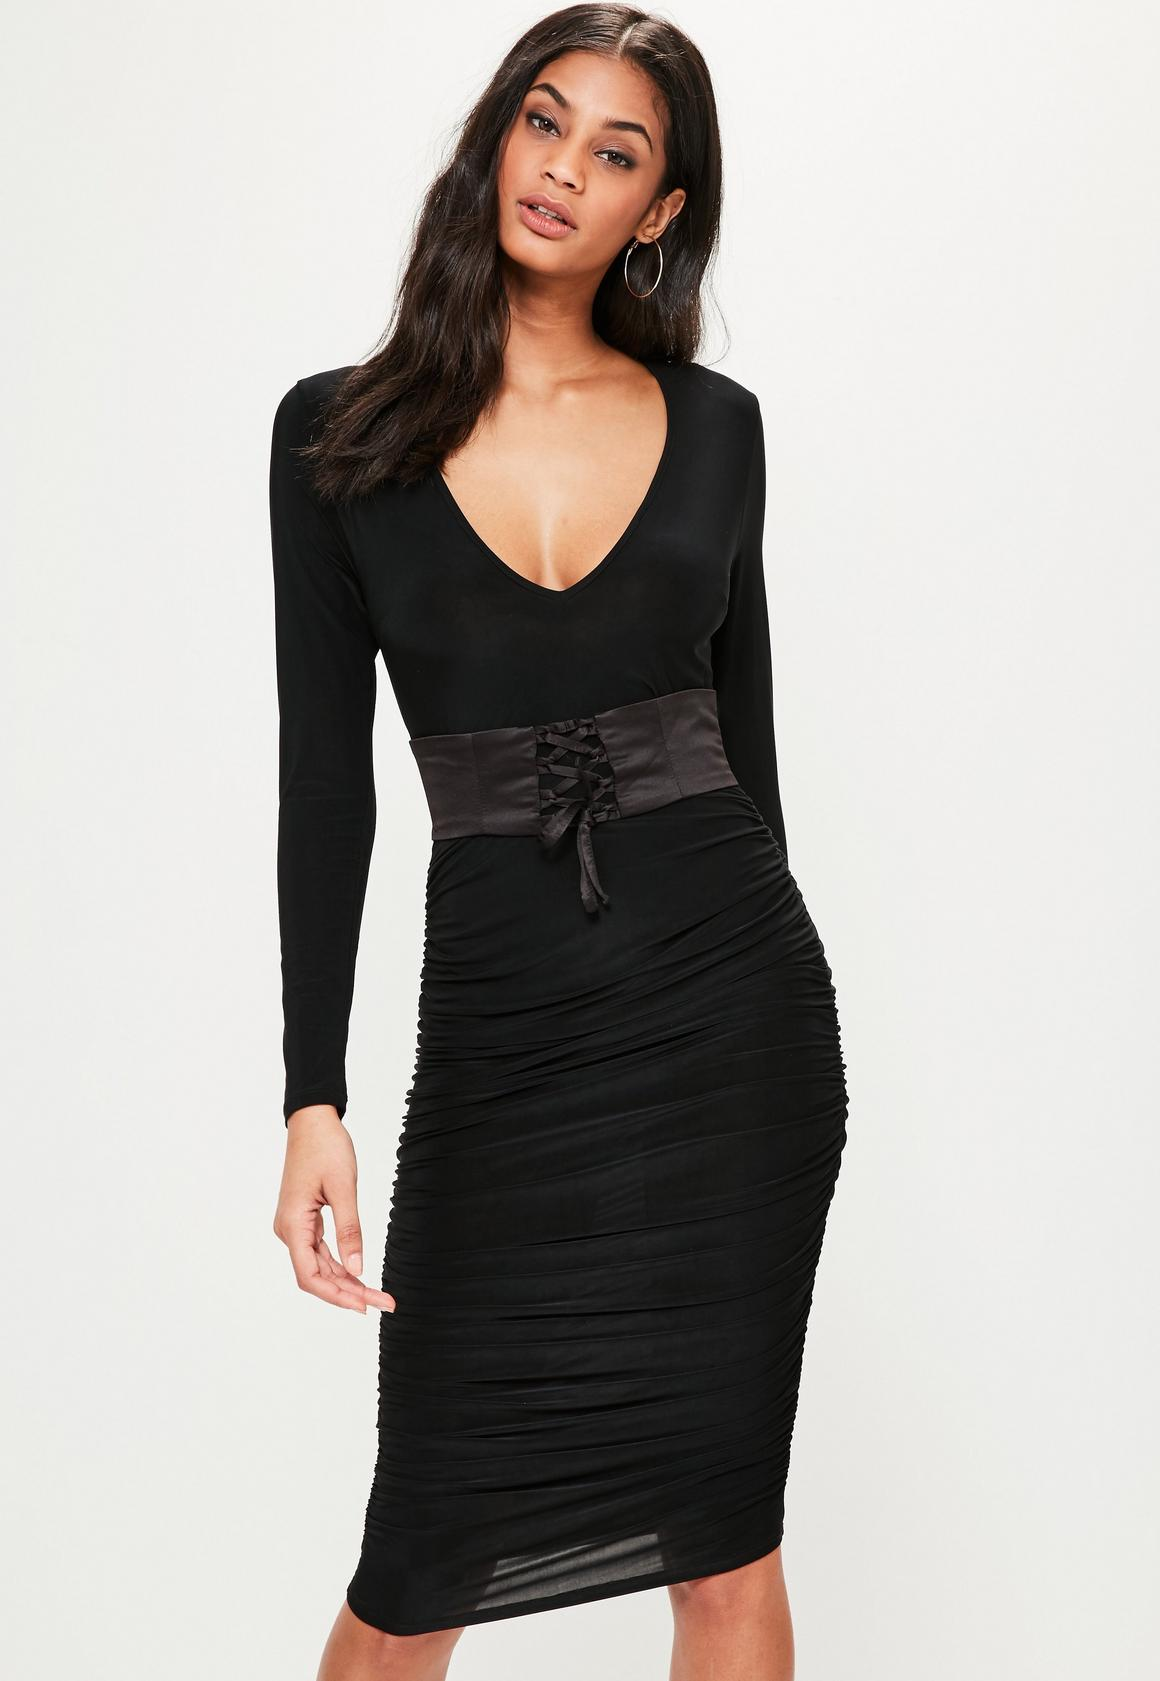 V front black dress graphic